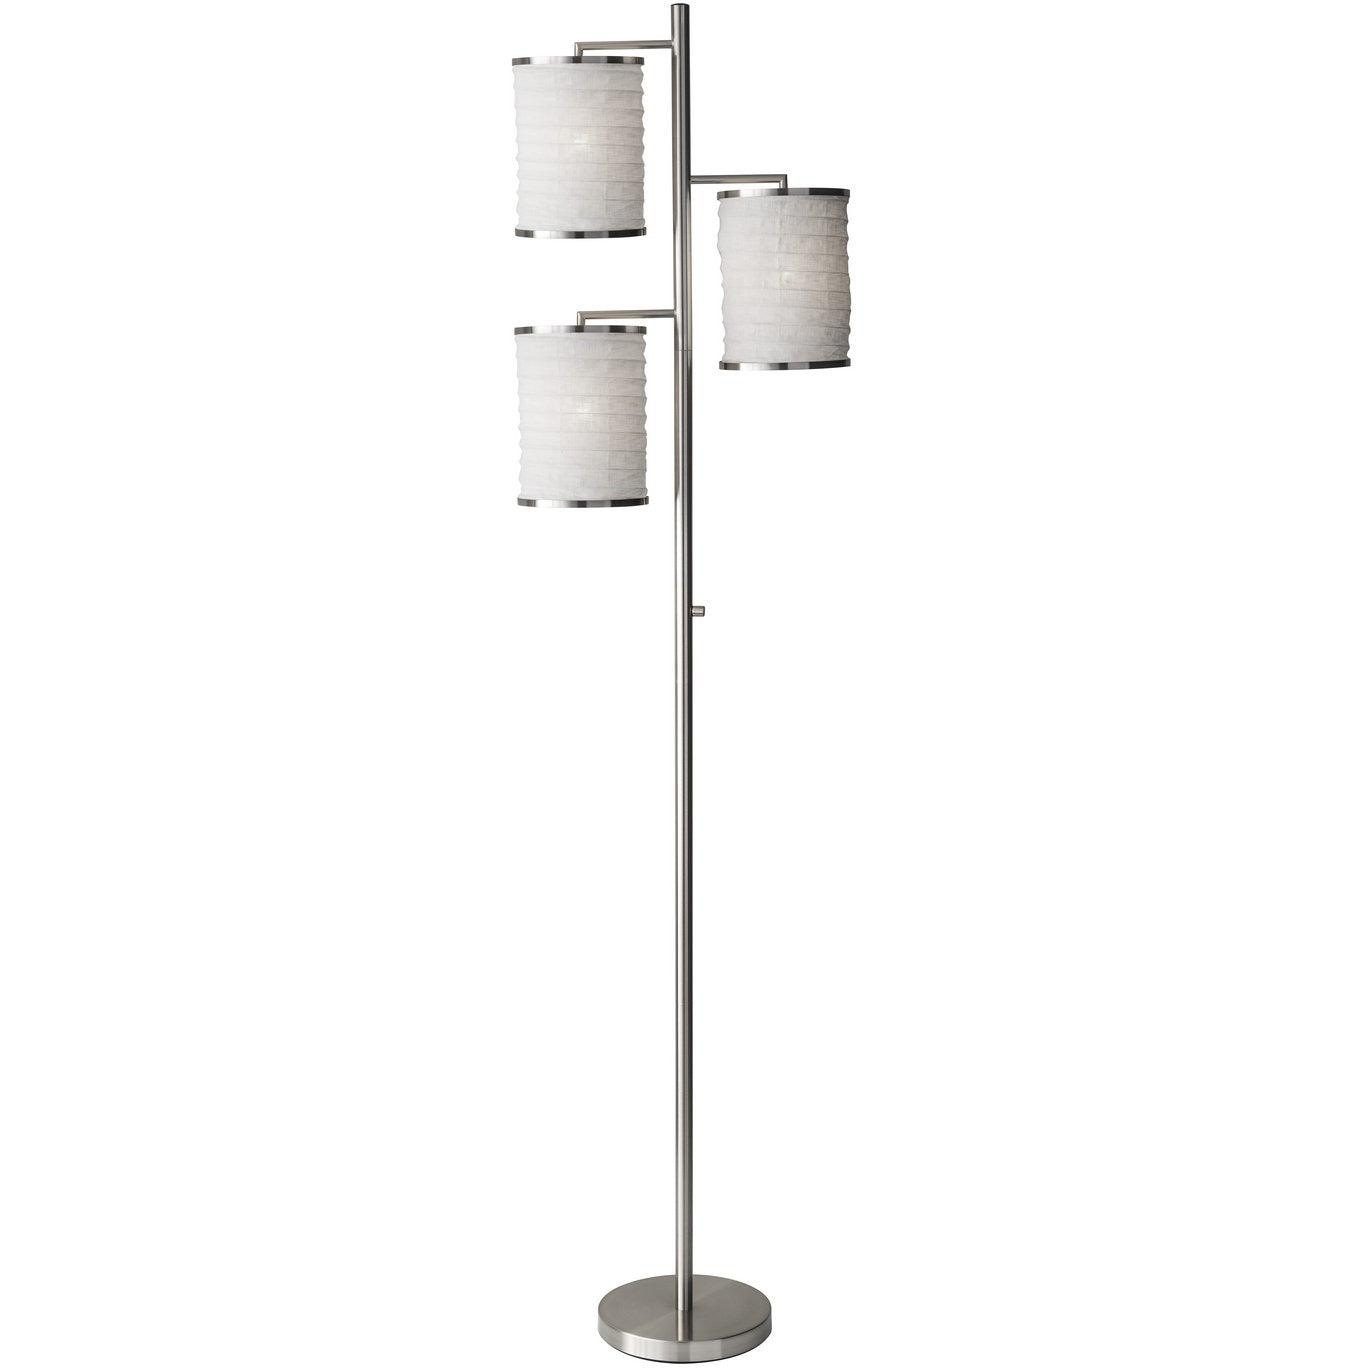 Adesso Home - 4152-22 - Three Light Floor Lamp - Bellows - Brushed Steel